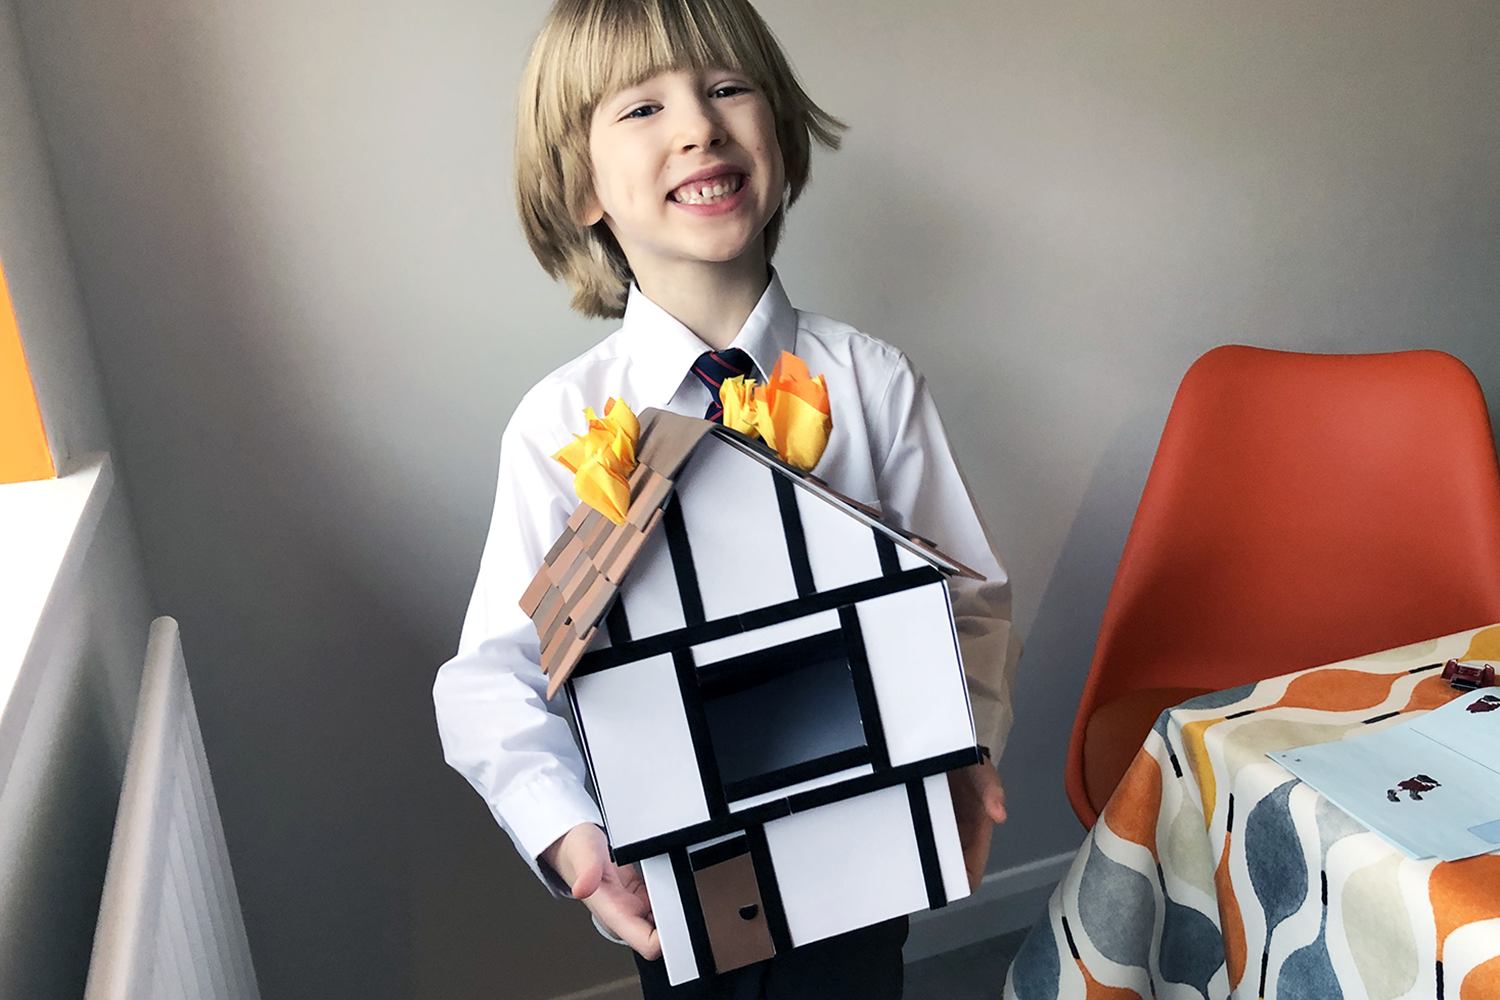 Toby with his Great Fire of London house